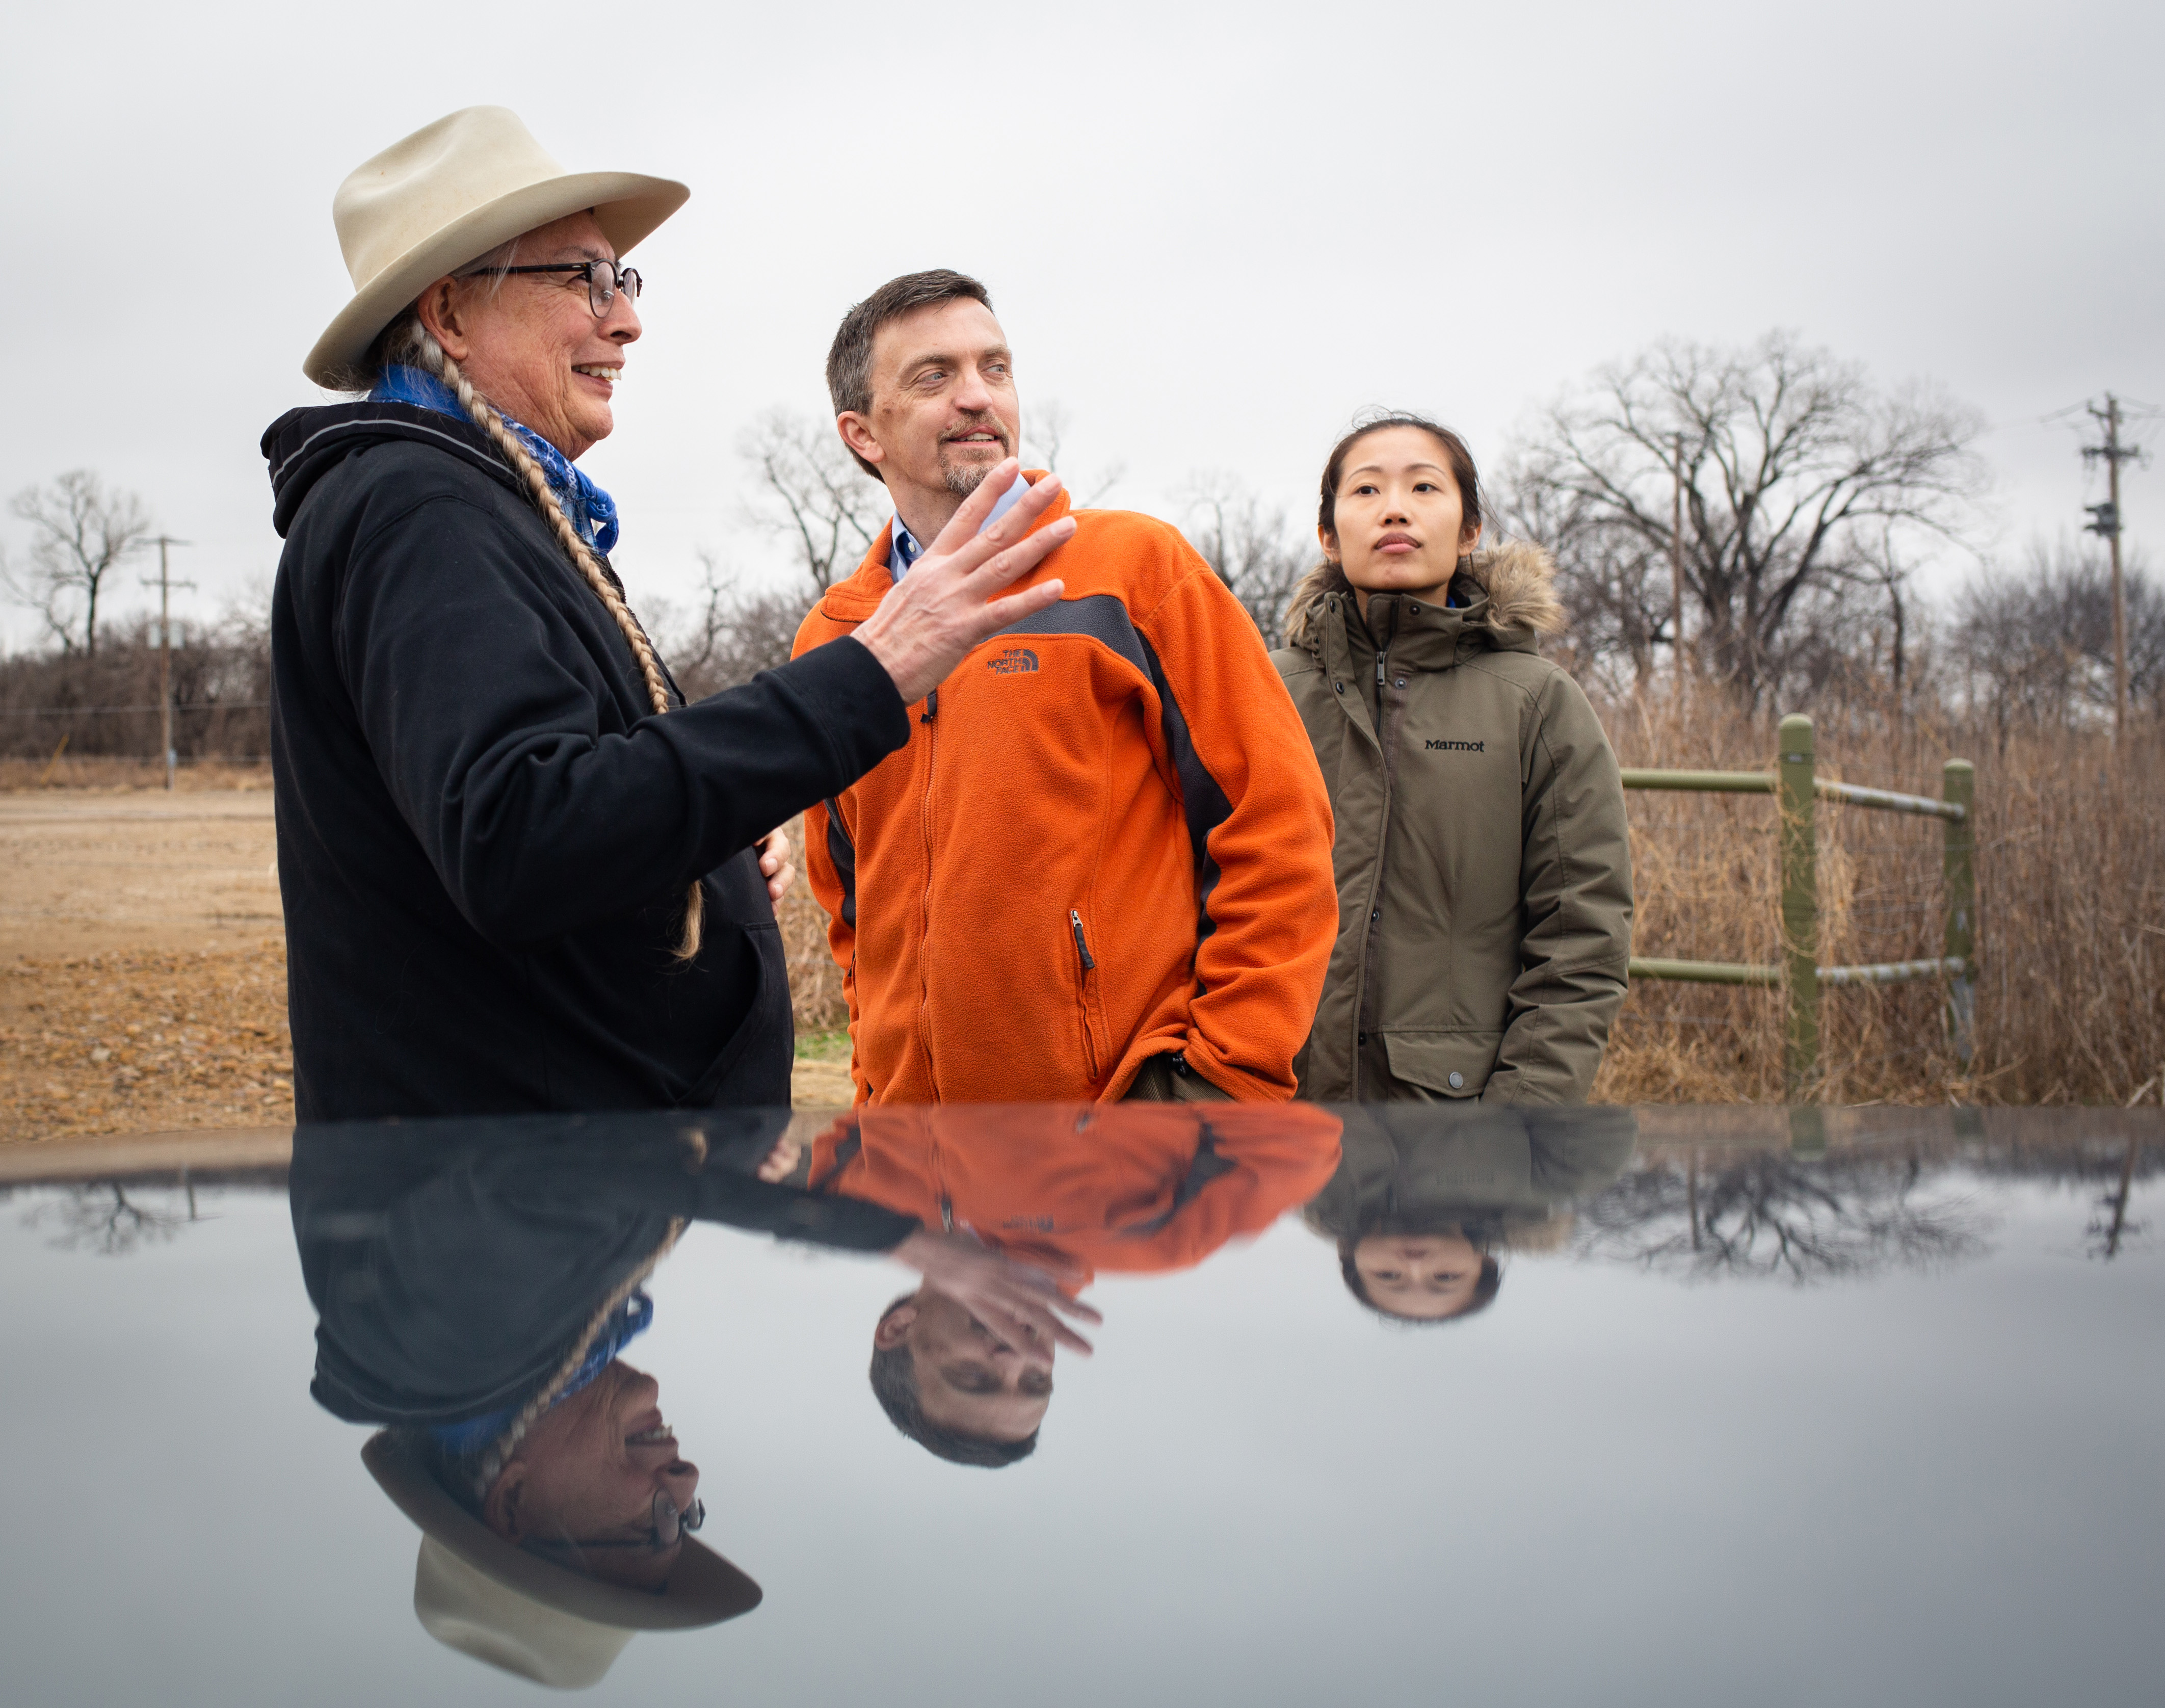 Walter Echo Hawk, left, gives a tour of fossil fuel drilling projects near his home to Earthjustice attorneys Michael Freeman and Yvonne Chi.